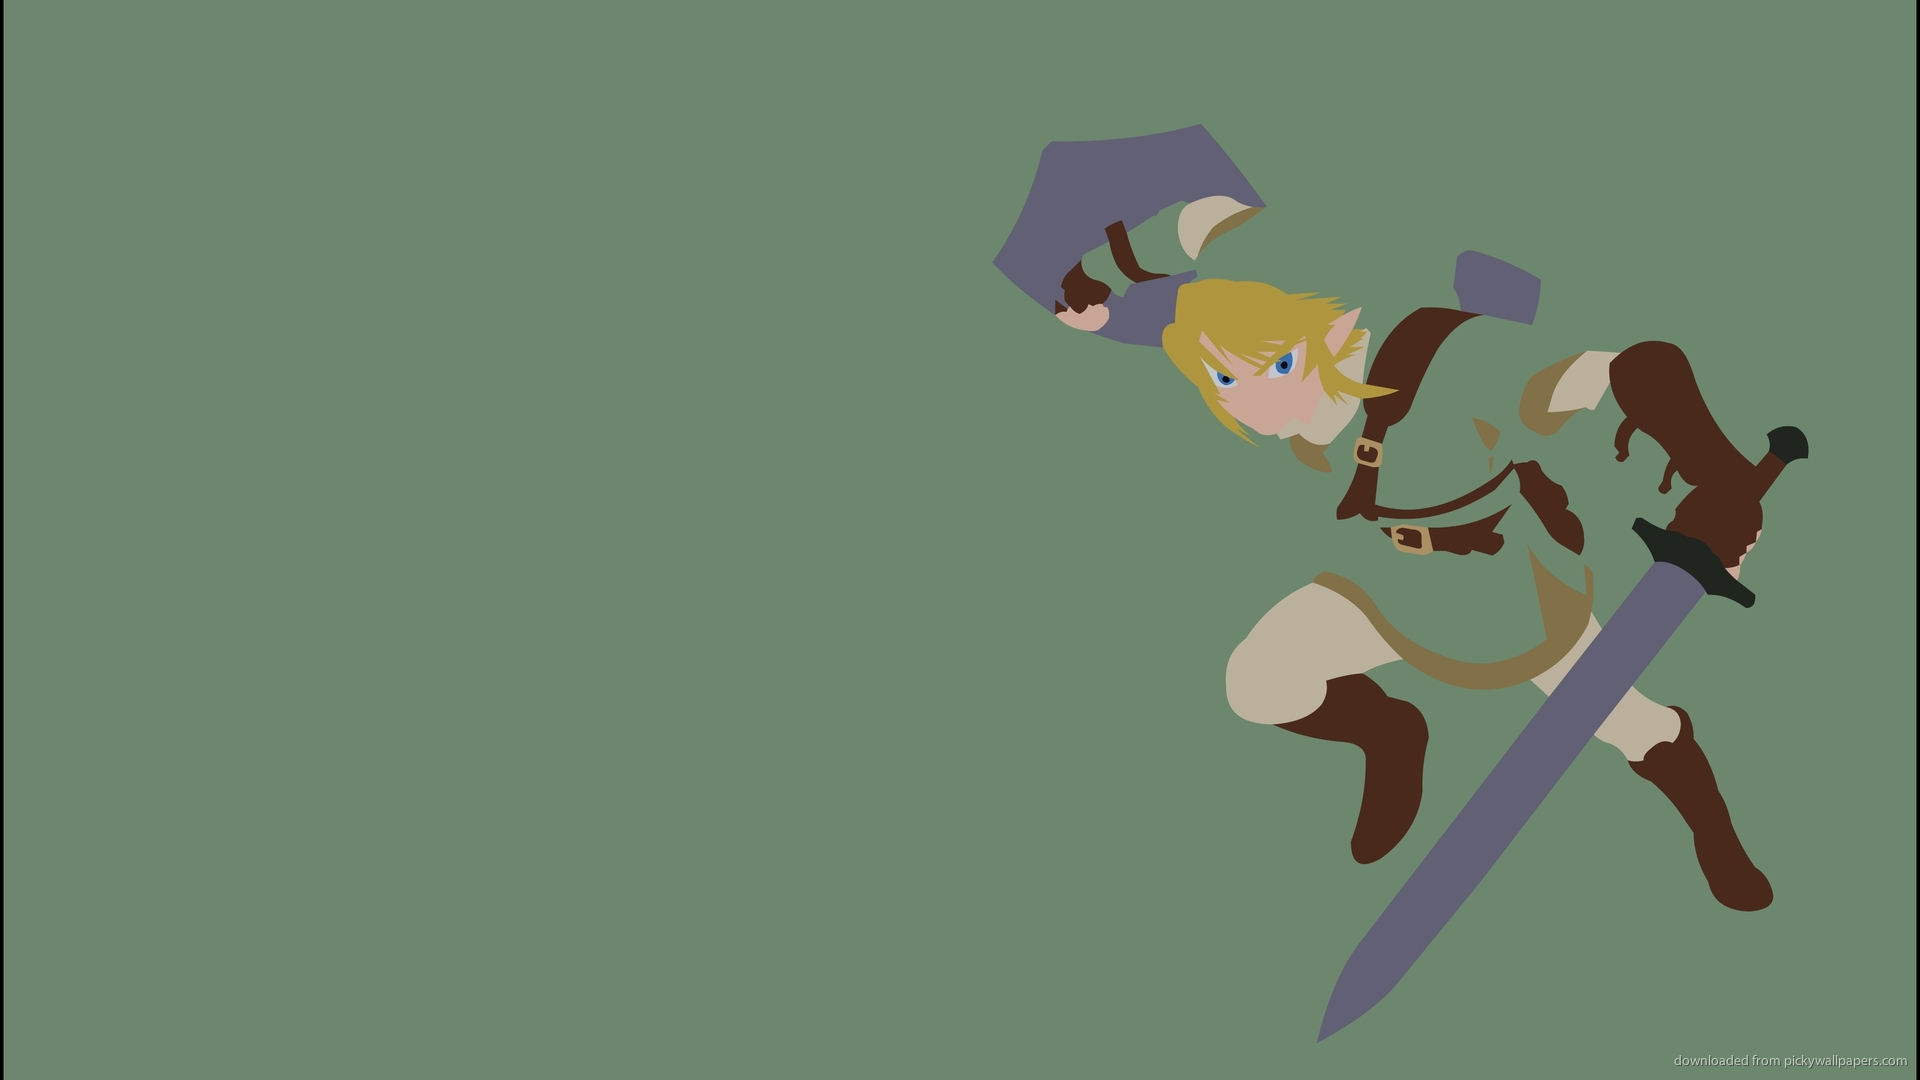 wallpaper title hd the legend of zelda wallpaper 1920x1080 wallpaper 1920x1080